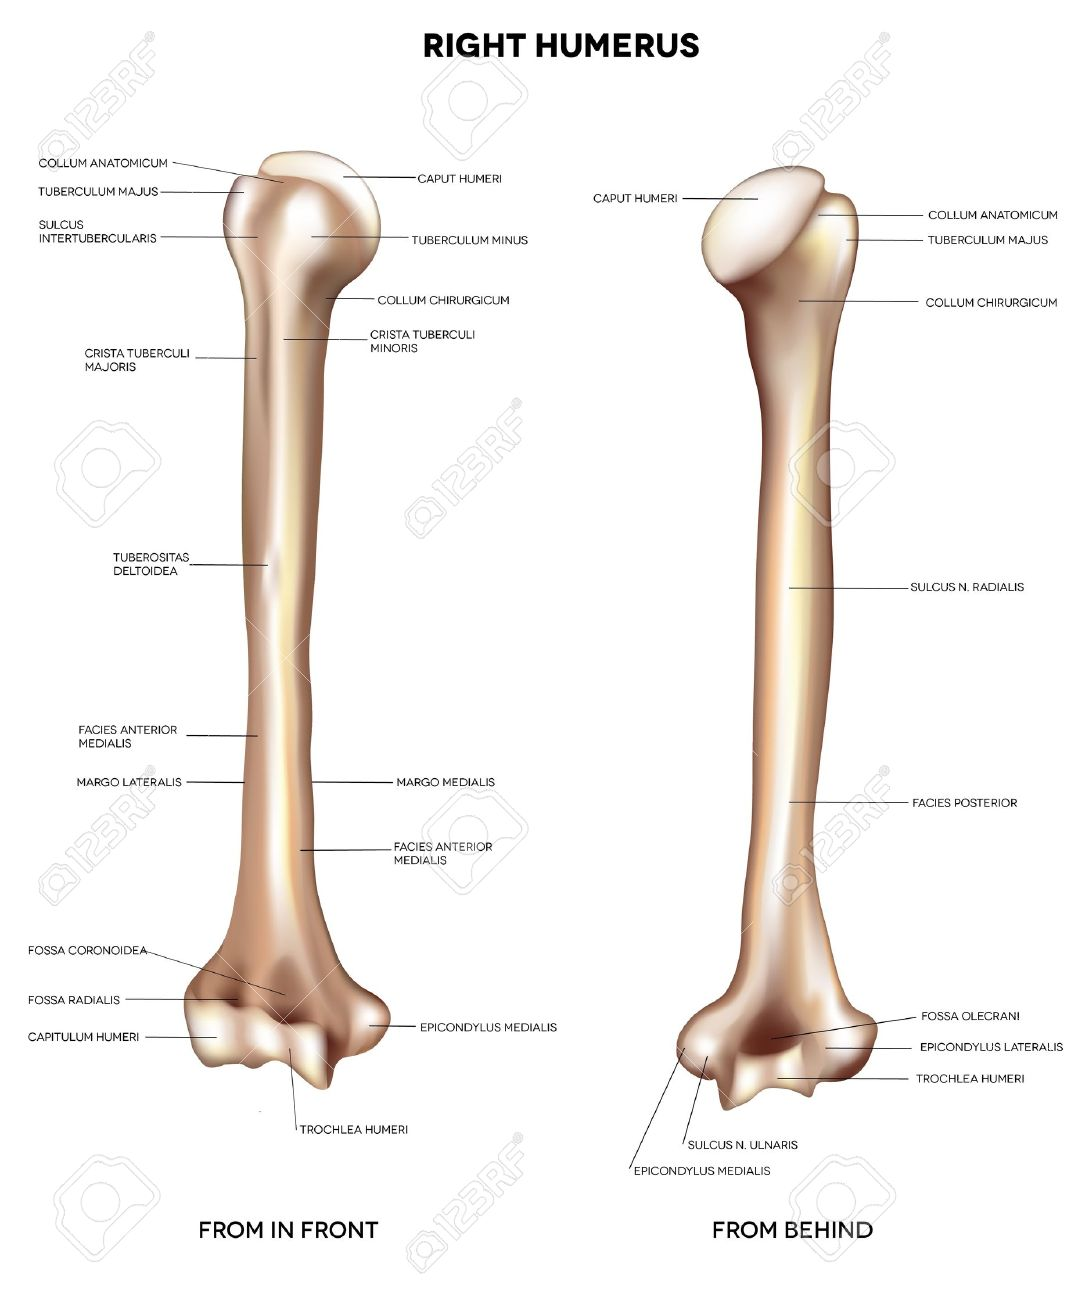 humerus- upper arm bone detailed medical illustration from, Cephalic Vein